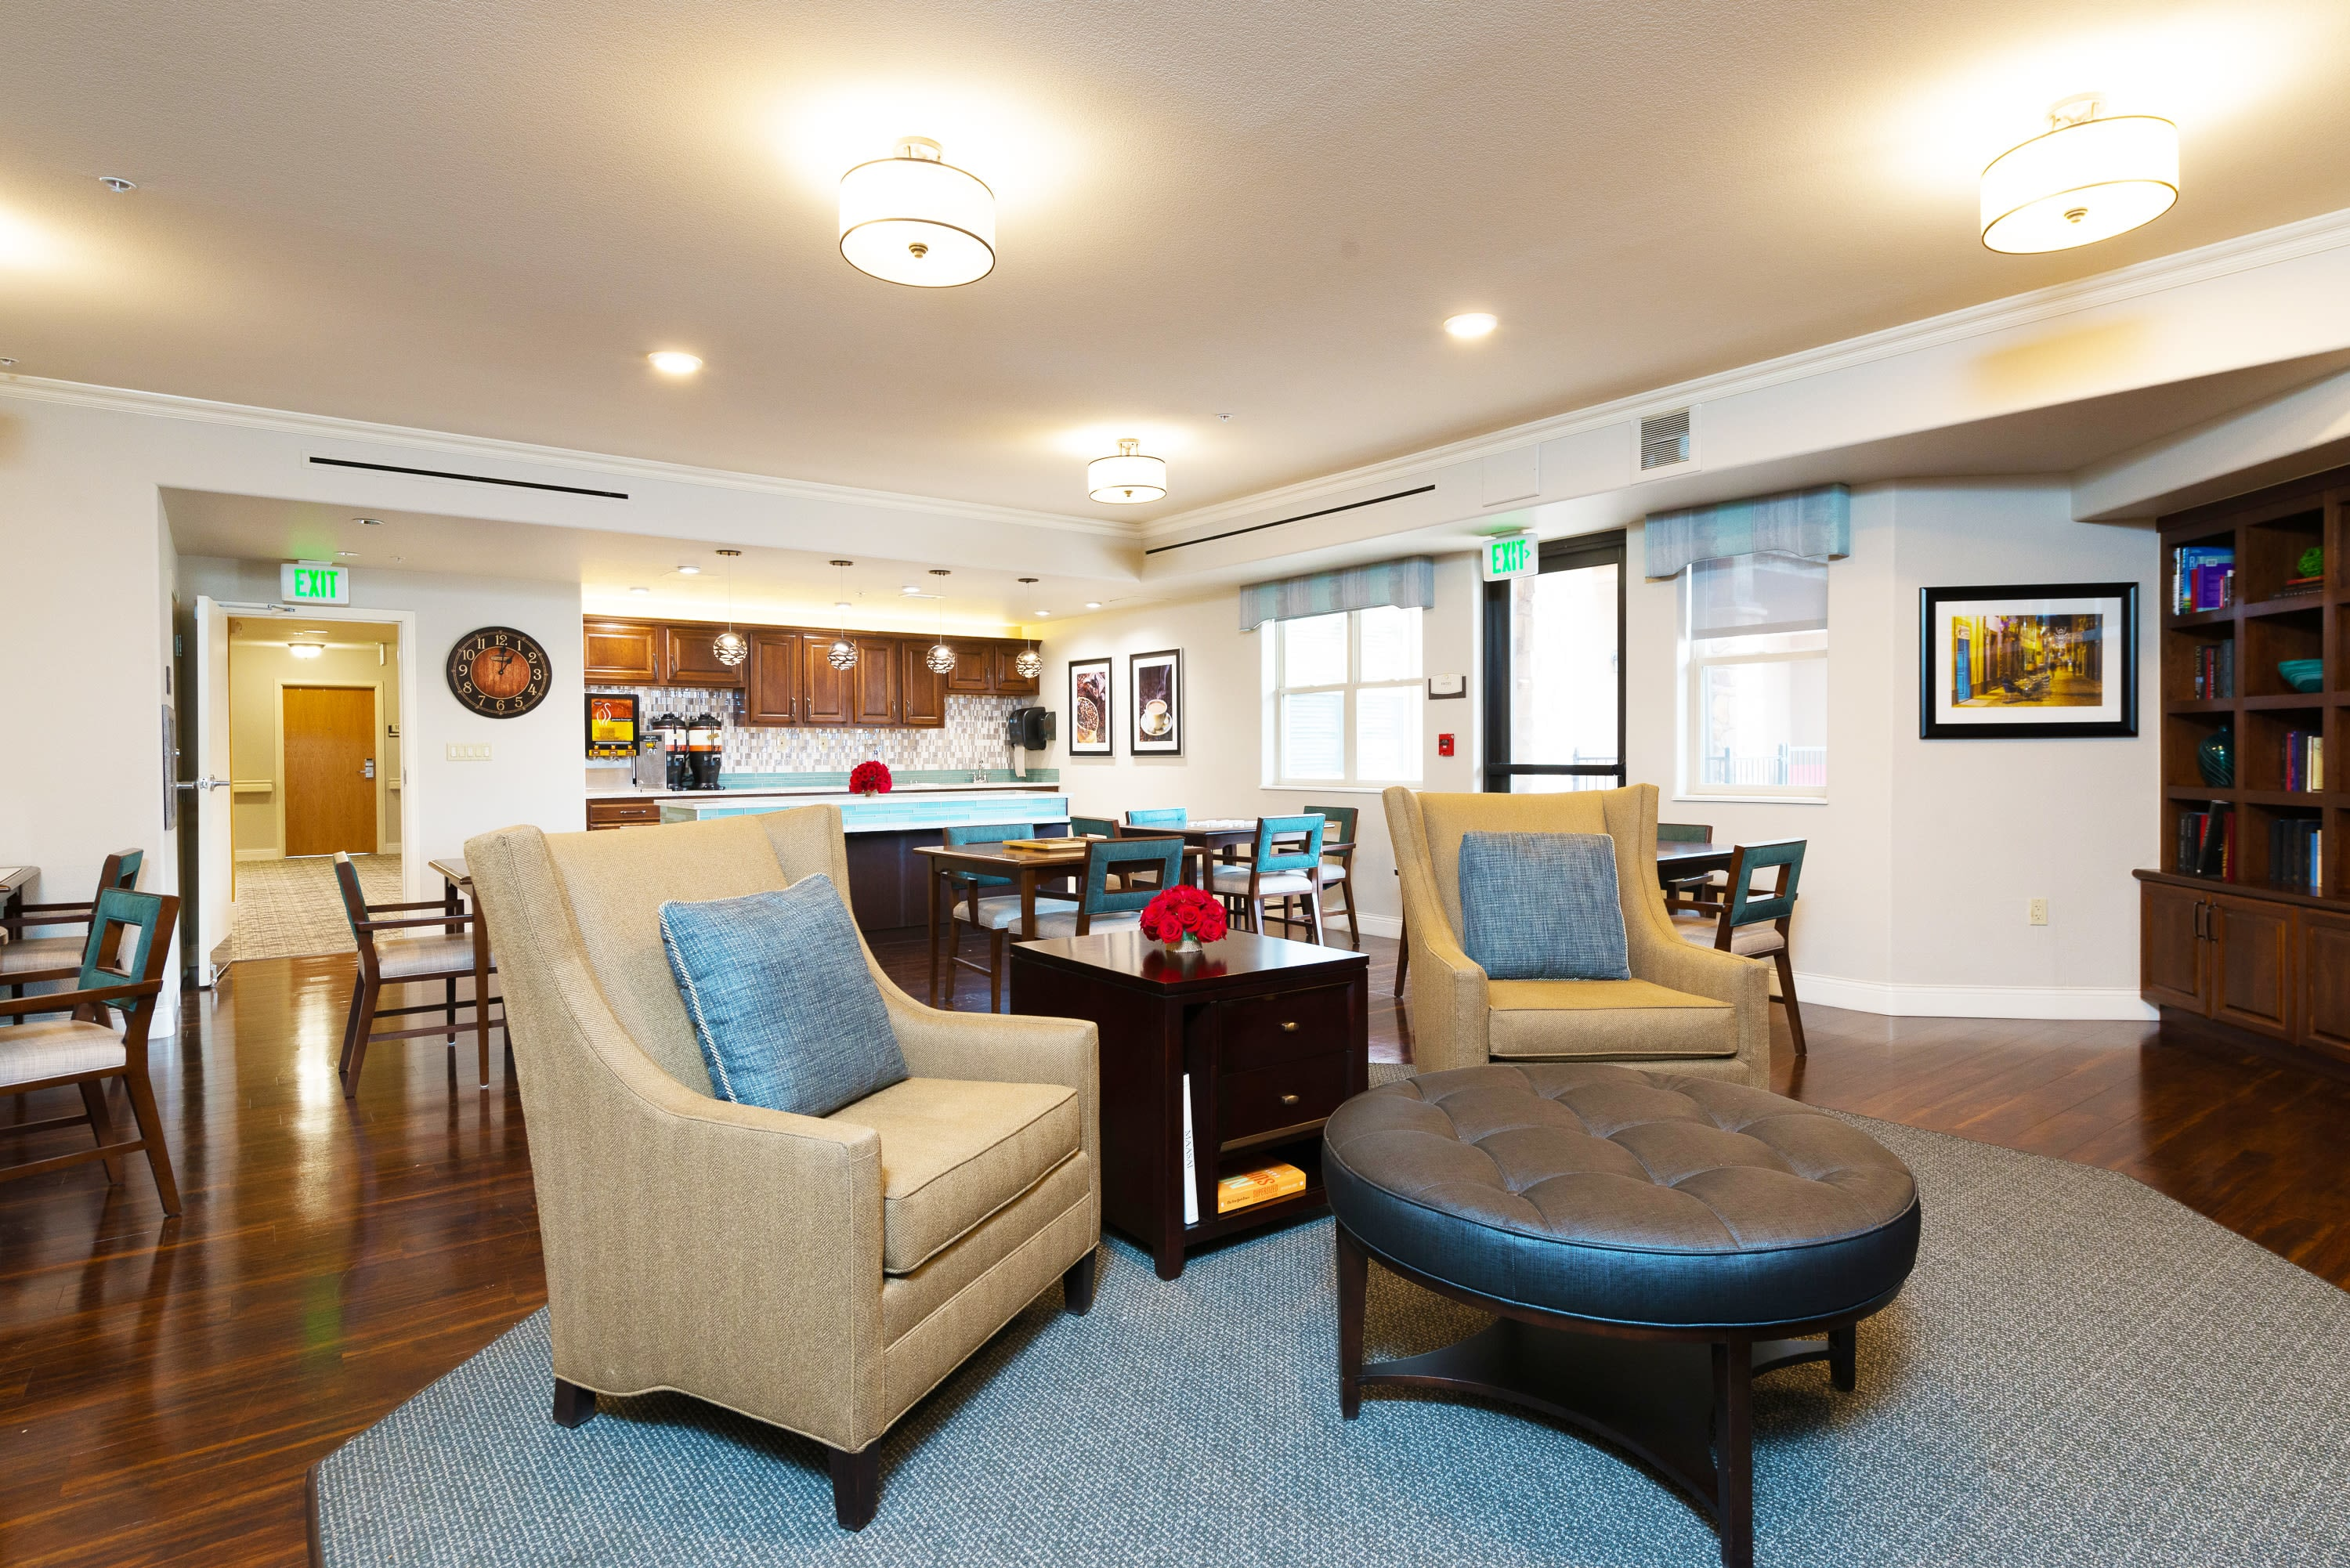 Events and specials at the senior living community in Colorado Springs